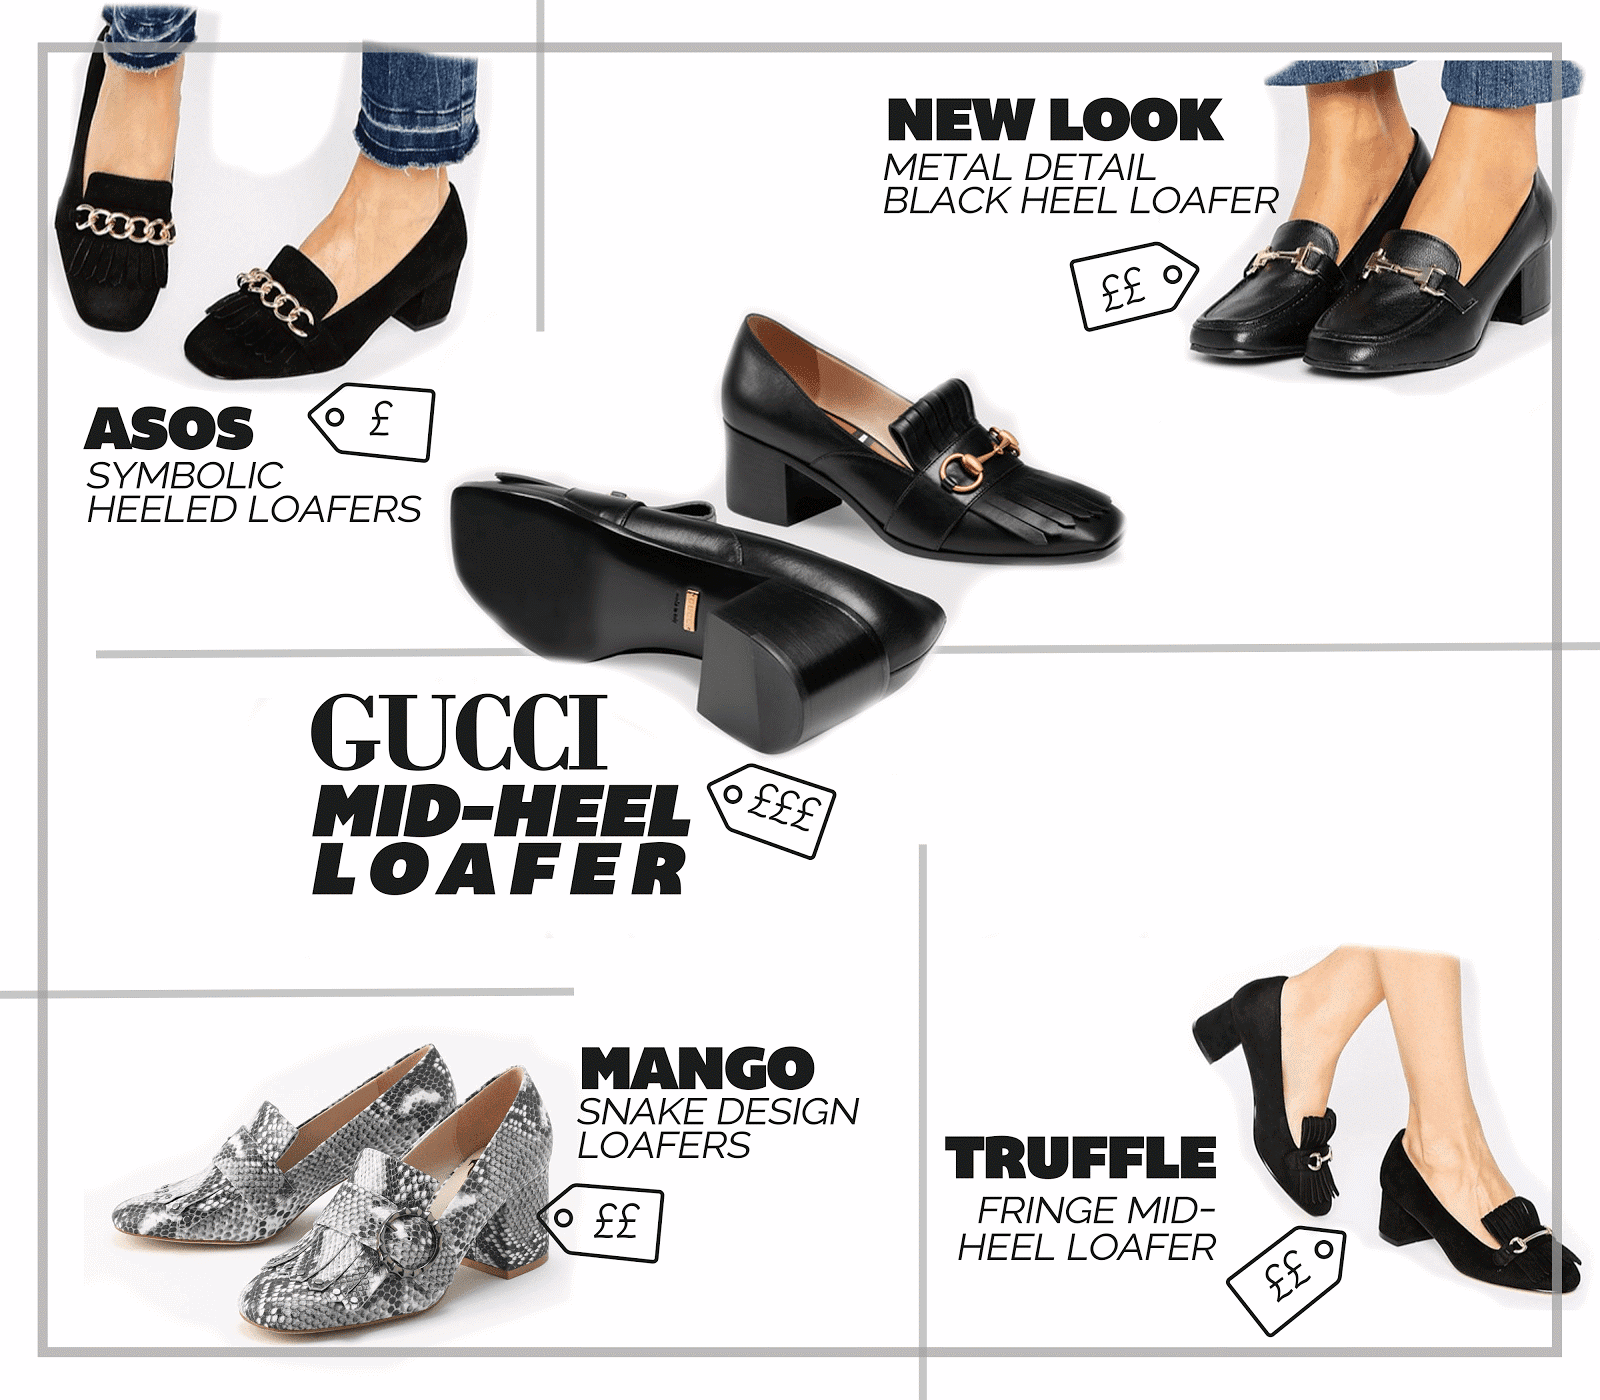 designer shoe gucci mid-heel loafer best highstreet dupes